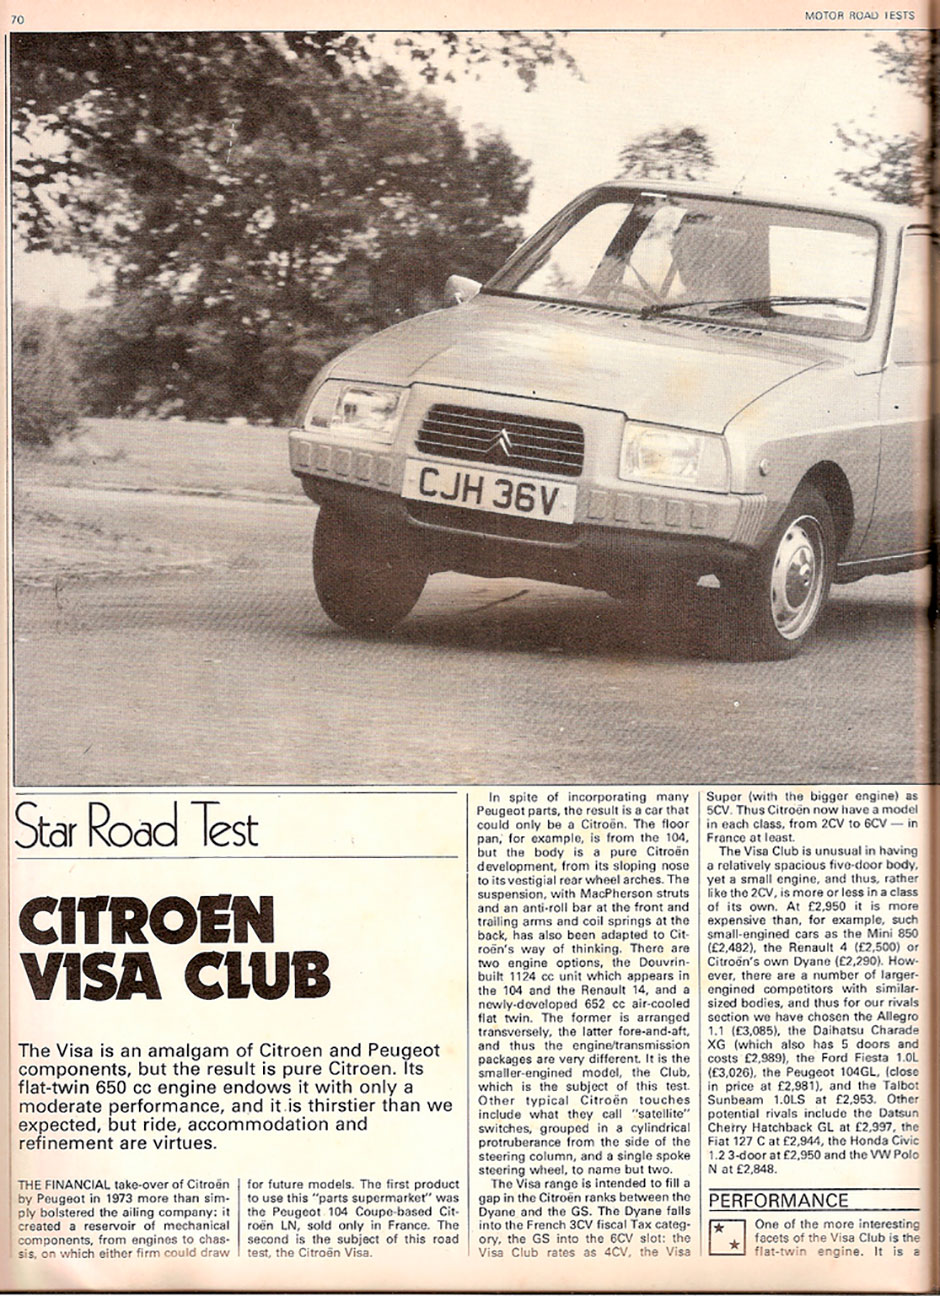 Citroen Visa 650 Club